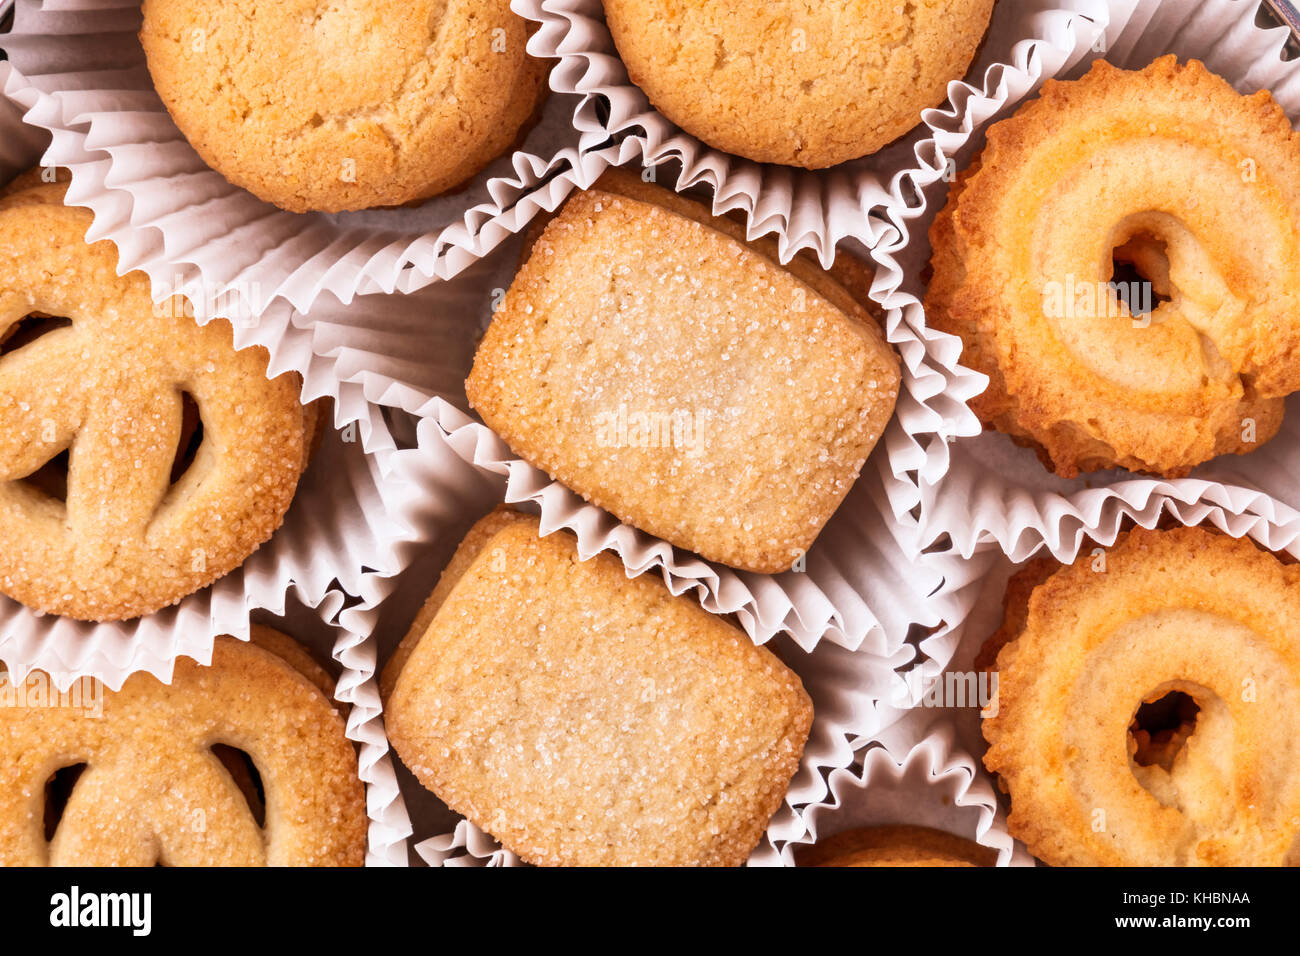 An overhead photo of Danish butter cookies in their paper skirts, a closeup of the traditional Christmas pastry - Stock Image